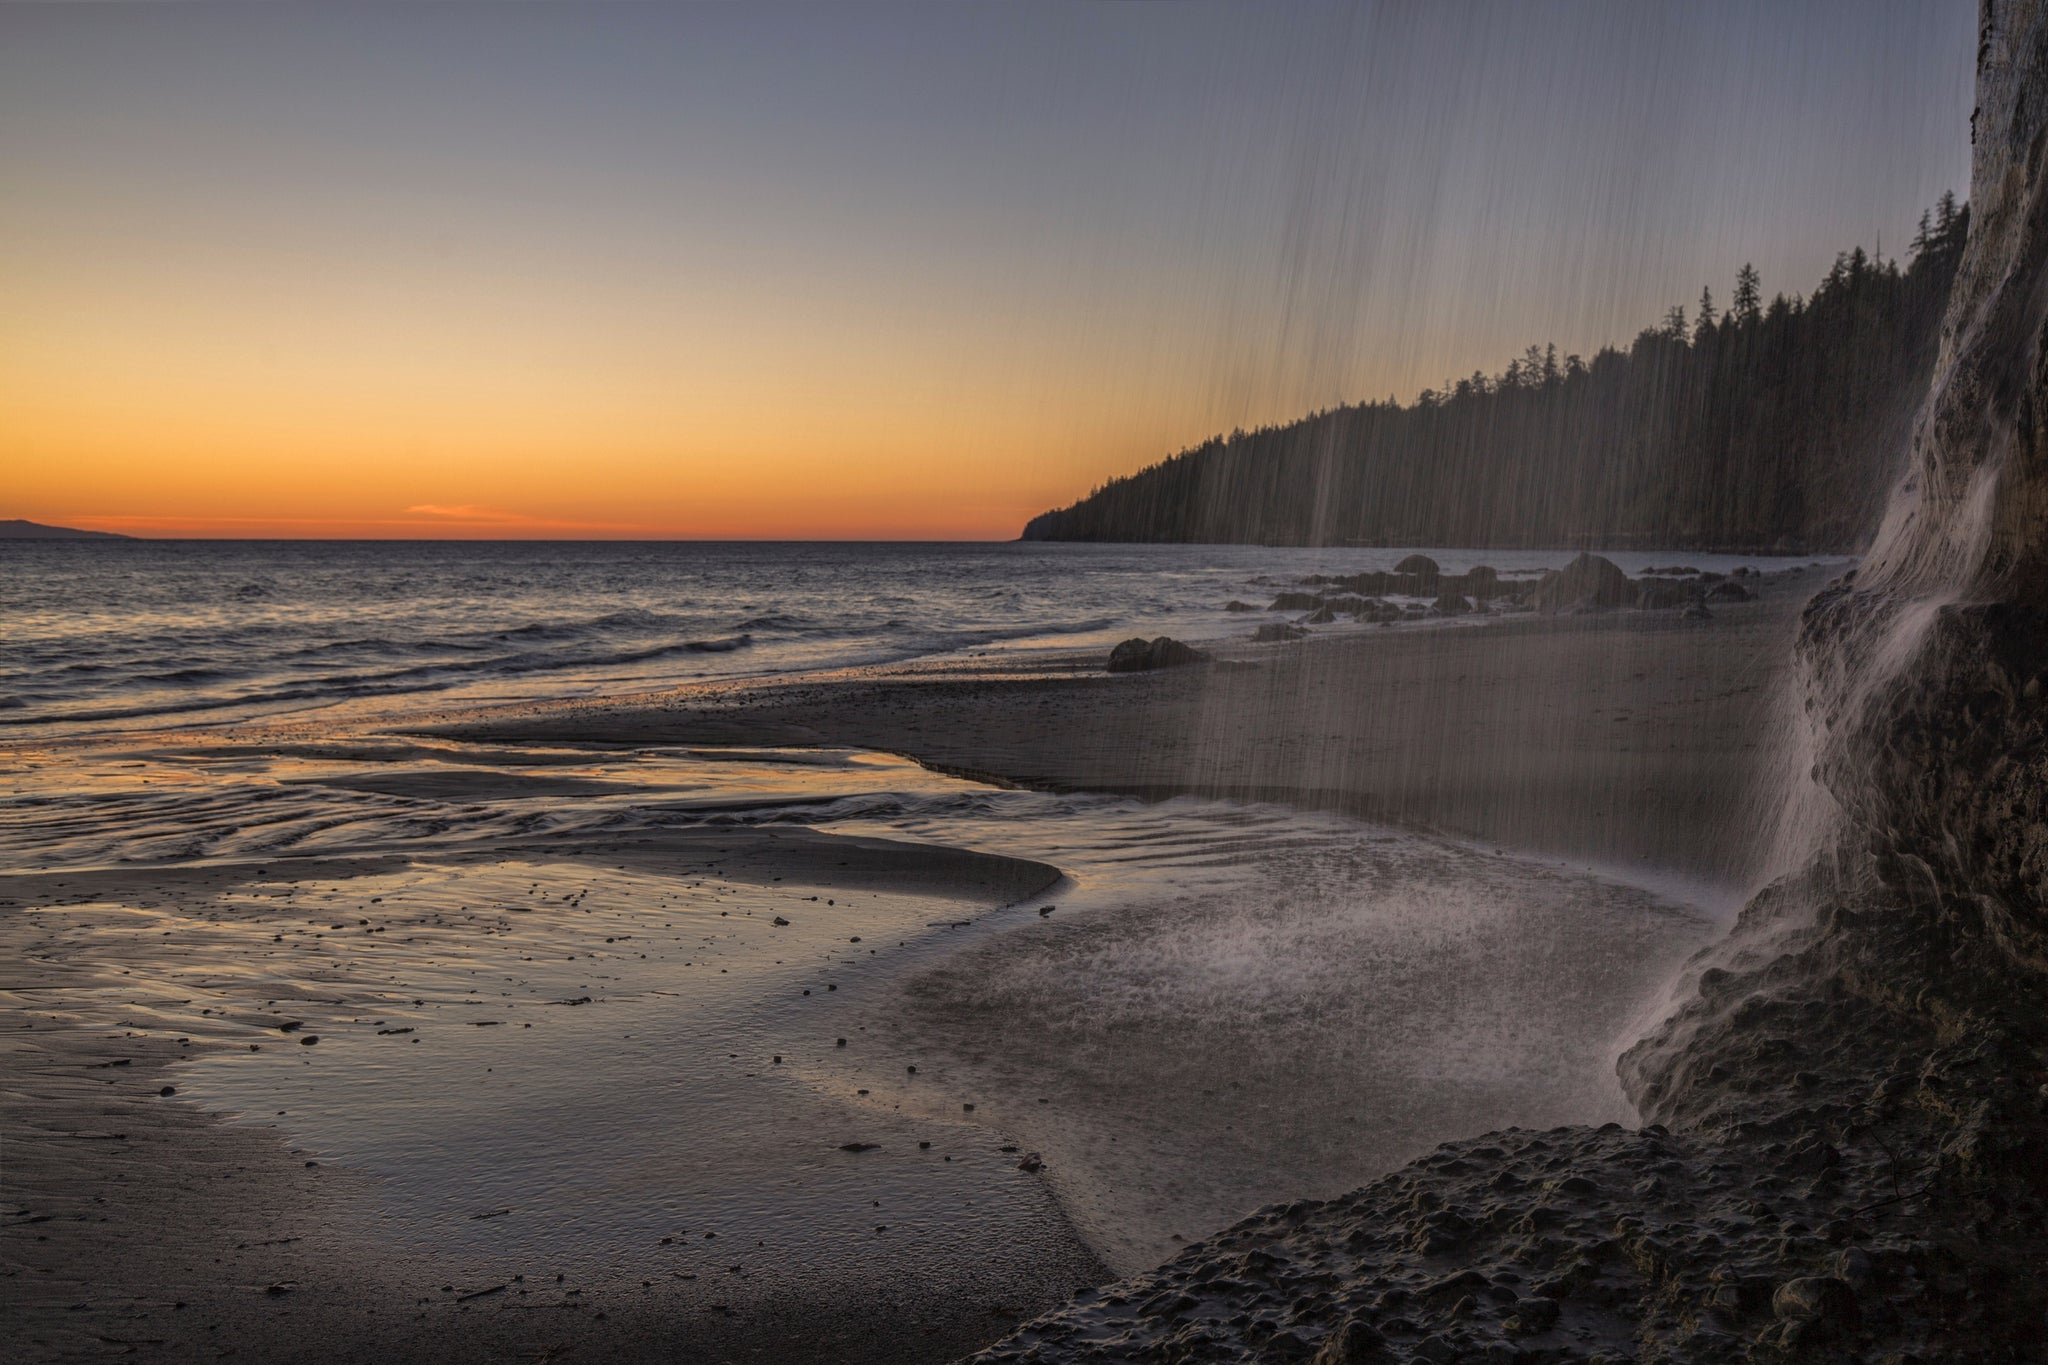 Mystic Beach, West coast of Vancouver Island